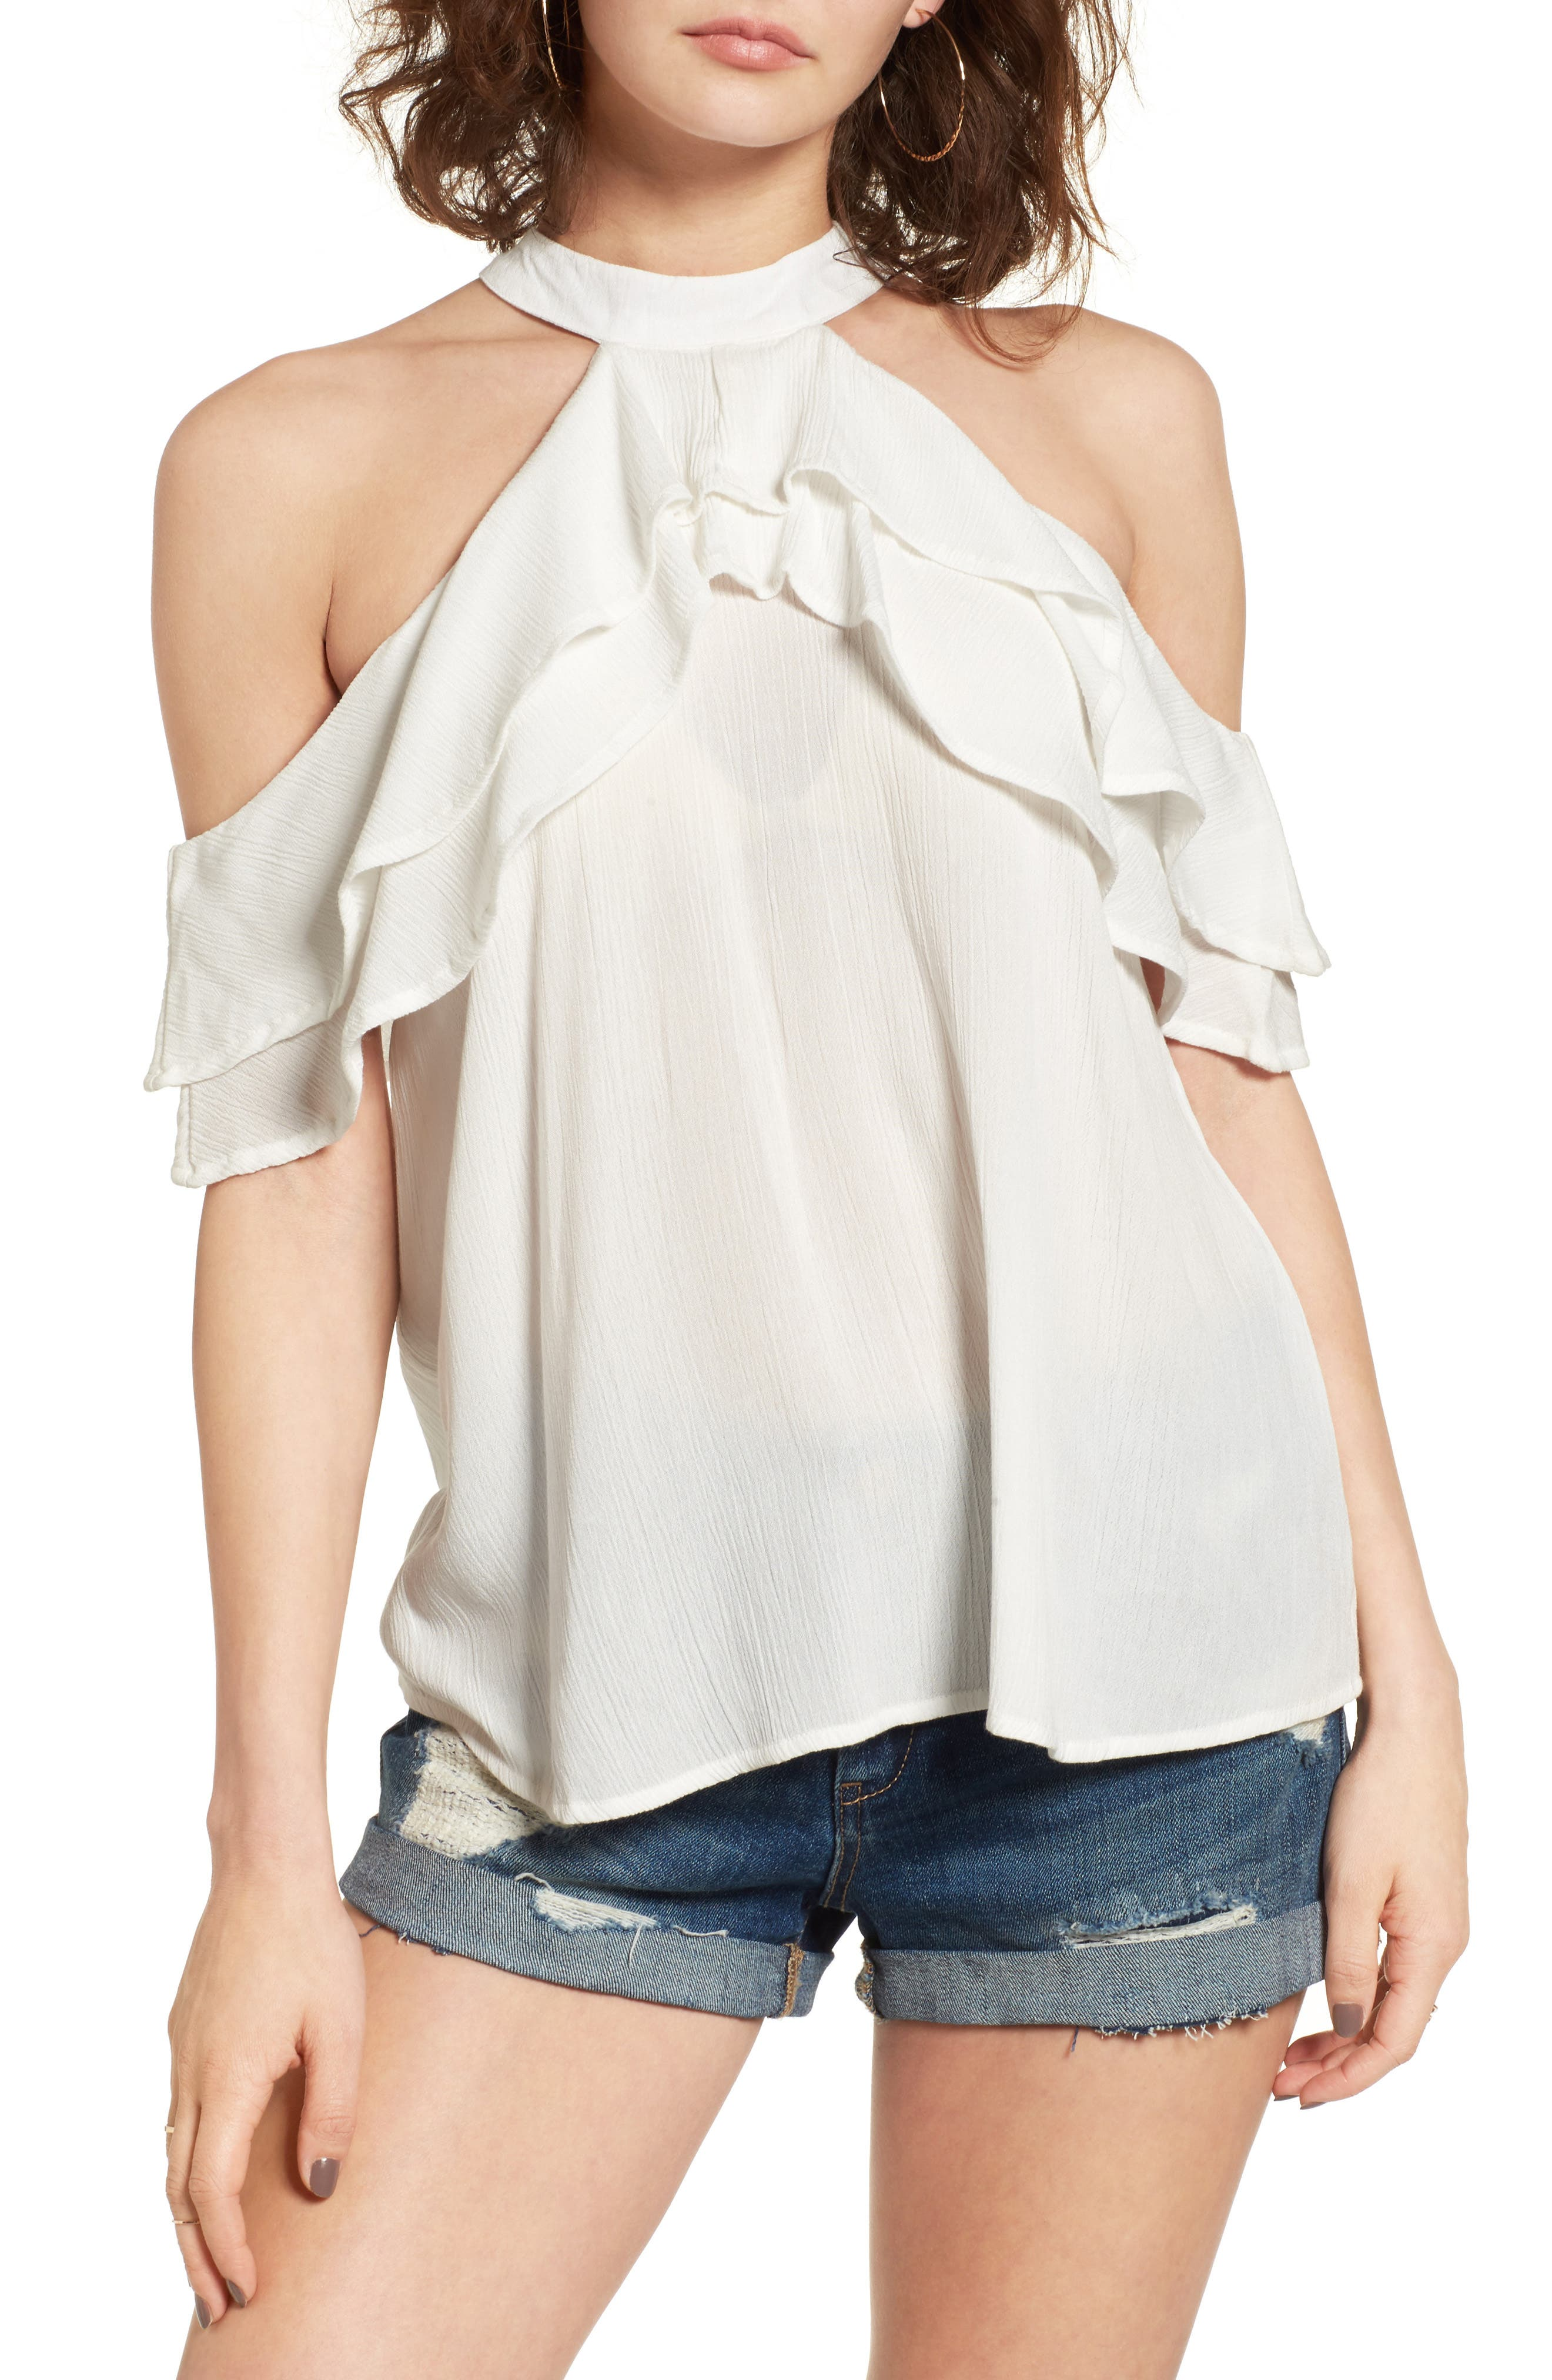 Alternate Image 1 Selected - Band of Gypsies Ruffle Cold Shoulder Blouse